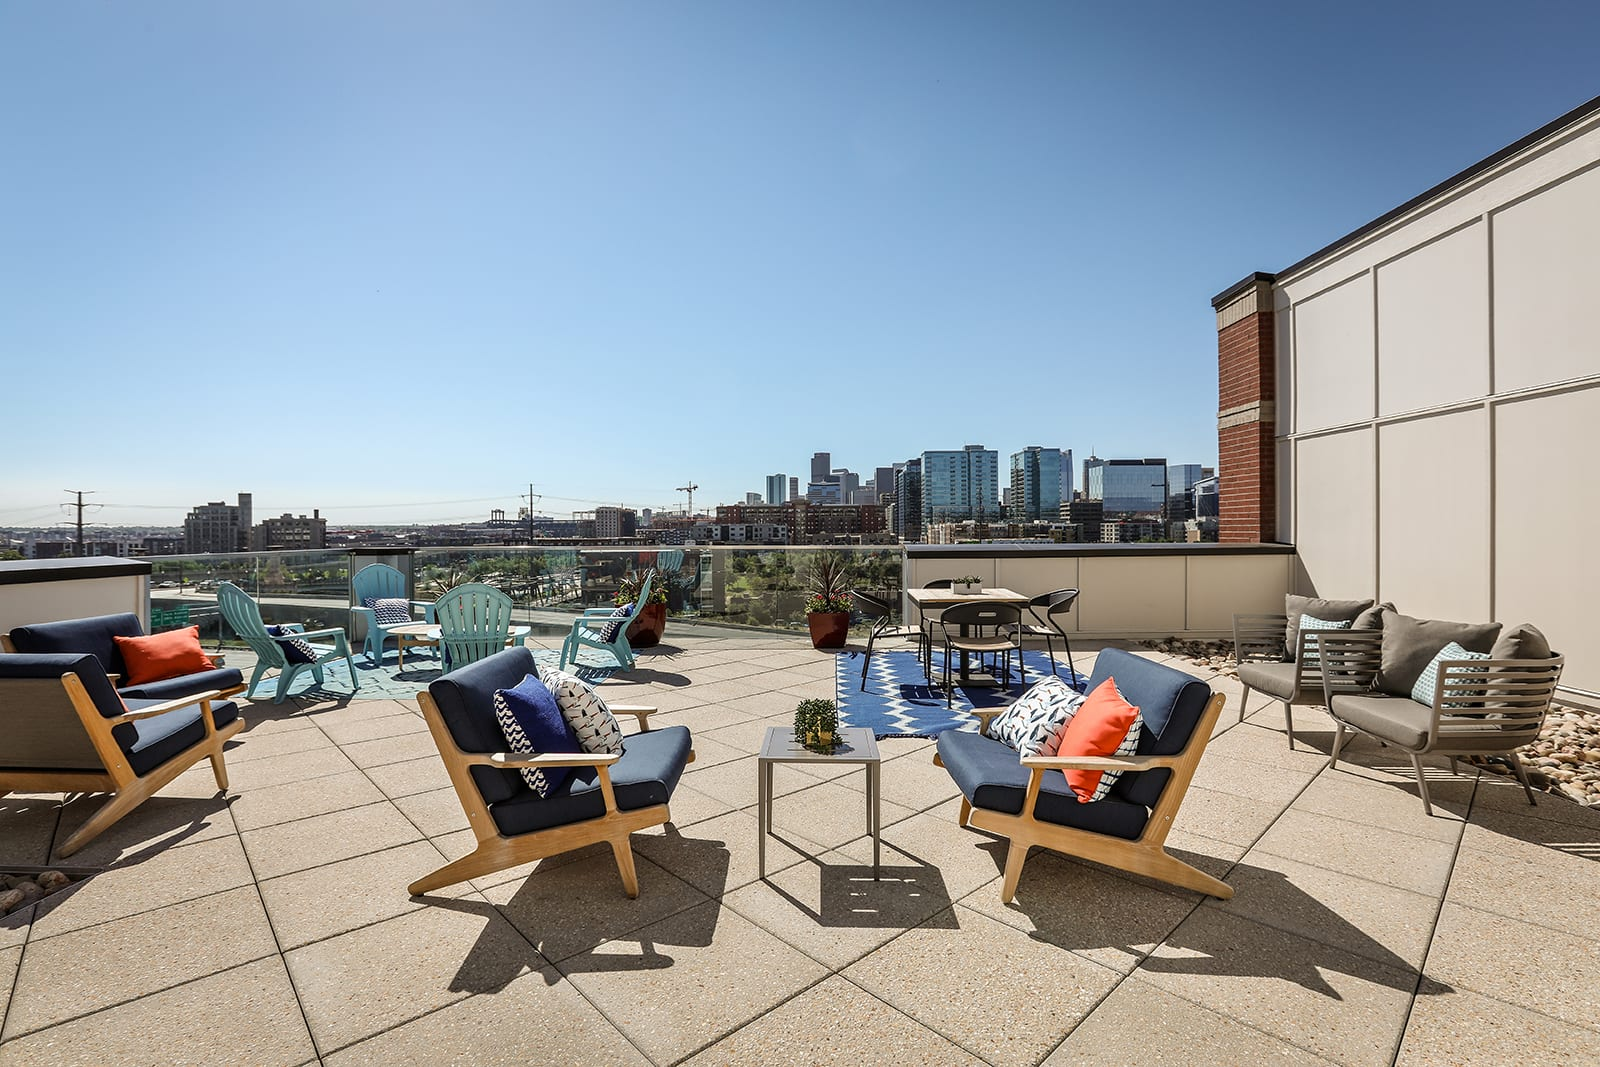 Rooftop Deck With Plenty Of Space To Lounge And Entertain at Centric LoHi by Windsor, Colorado, 80211